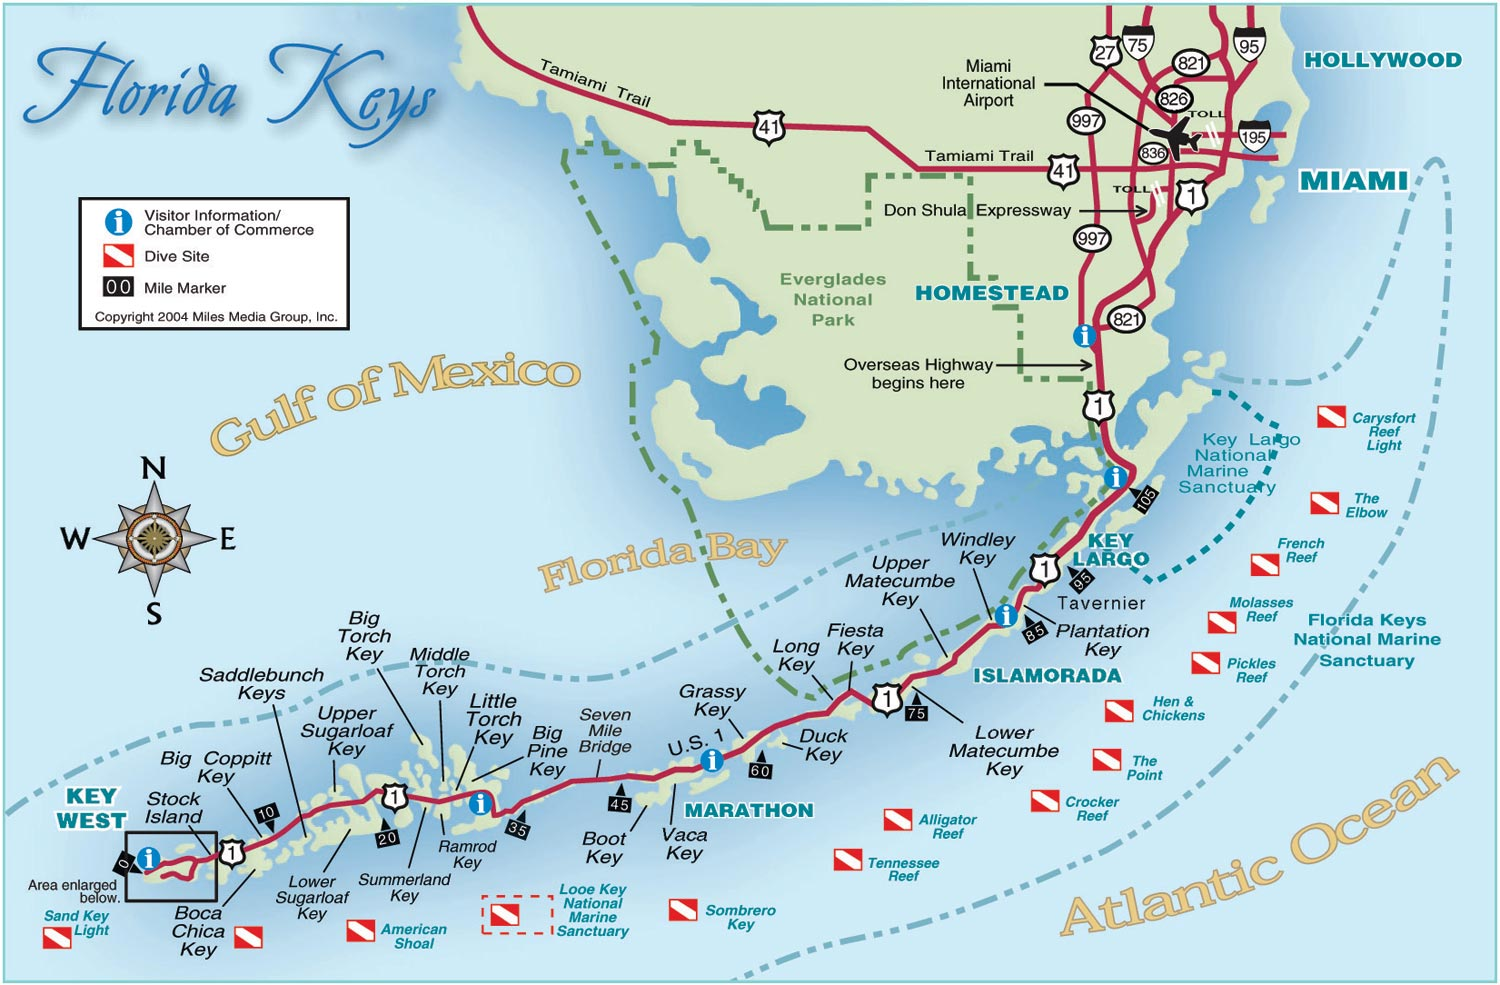 Florida keys luxury vacation rentals key west property management about map gumiabroncs Image collections